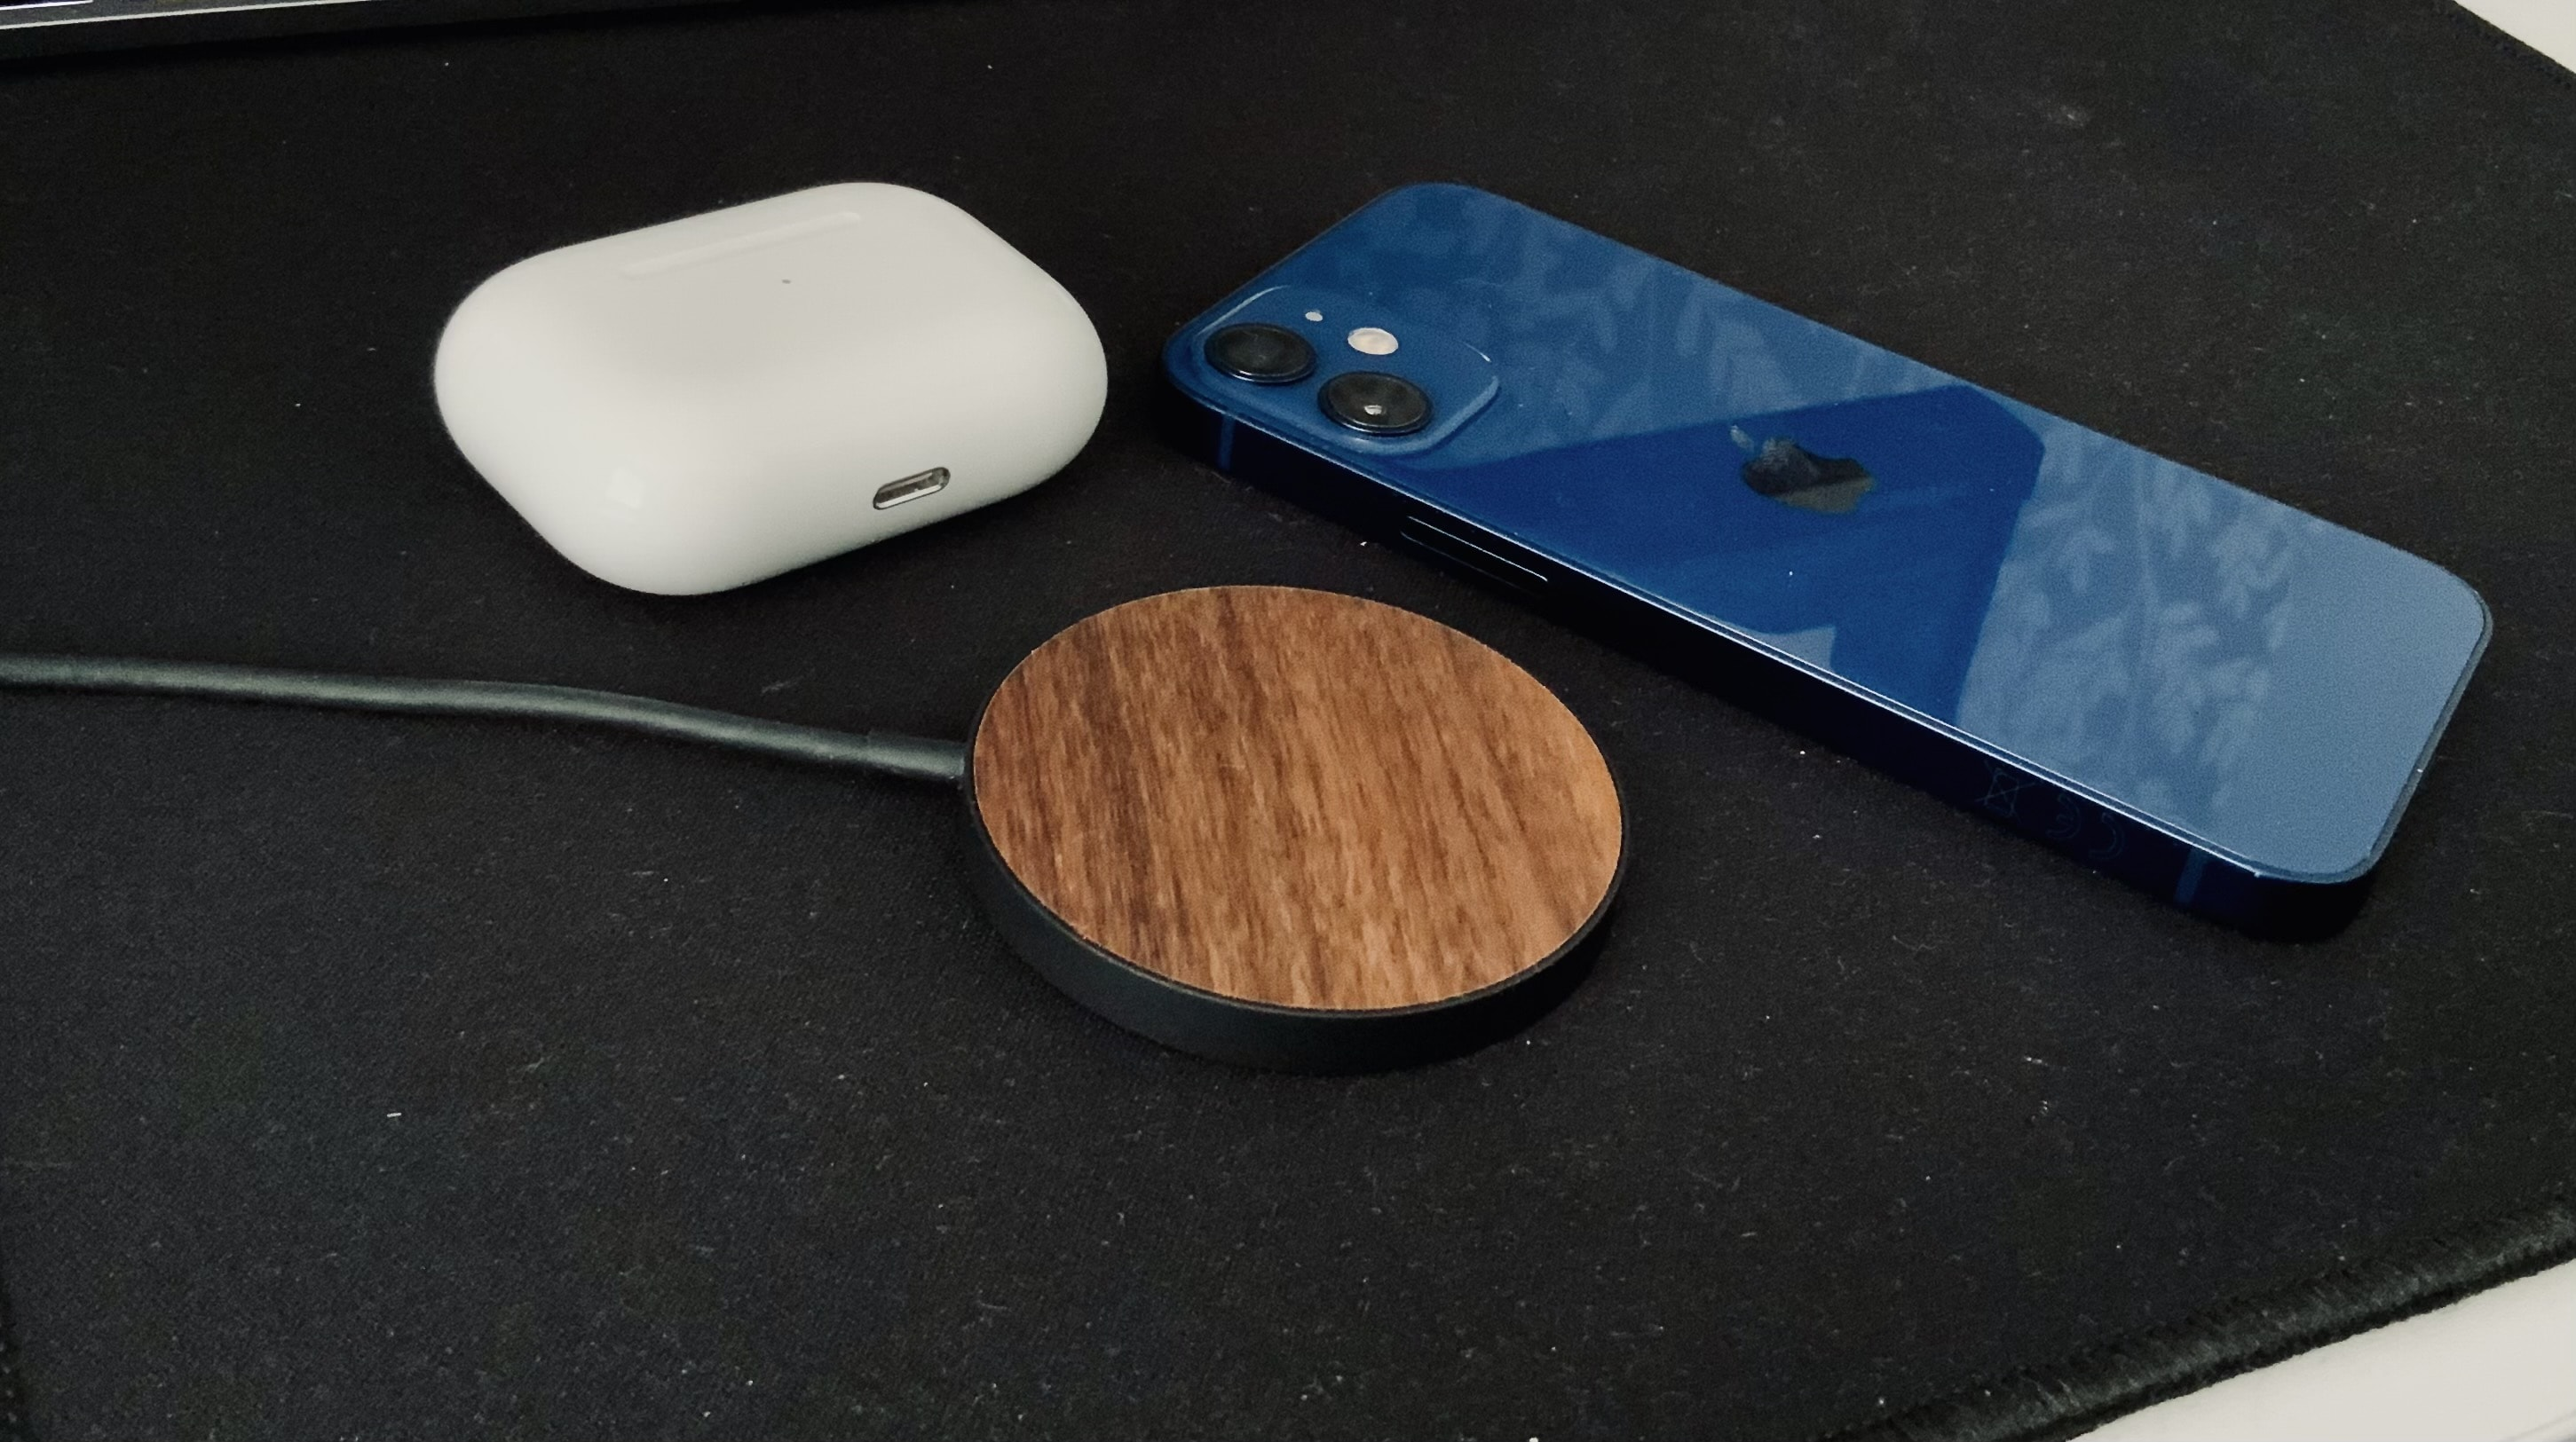 Limited77 Wood MagSafe Charger for iPhone: It's compatible with any device that uses Qi charging tech —including AirPods.